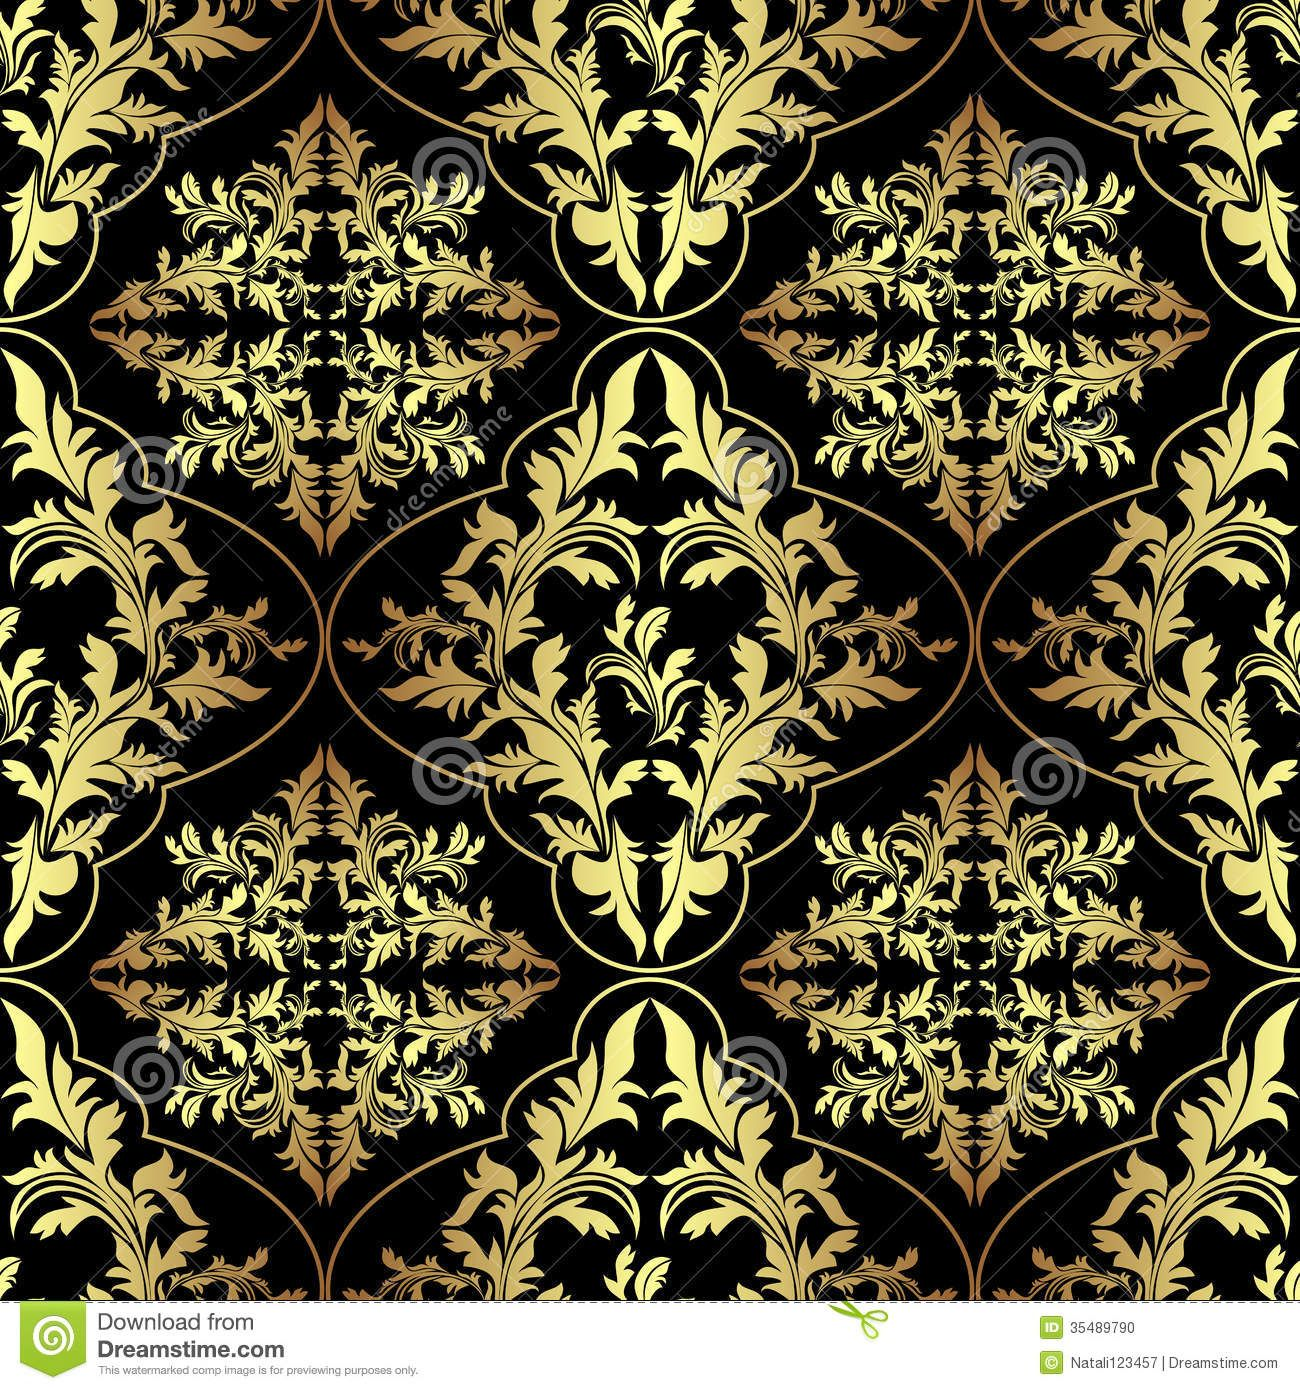 Damask fabric abstract google search print inspiration for Expensive wallpaper